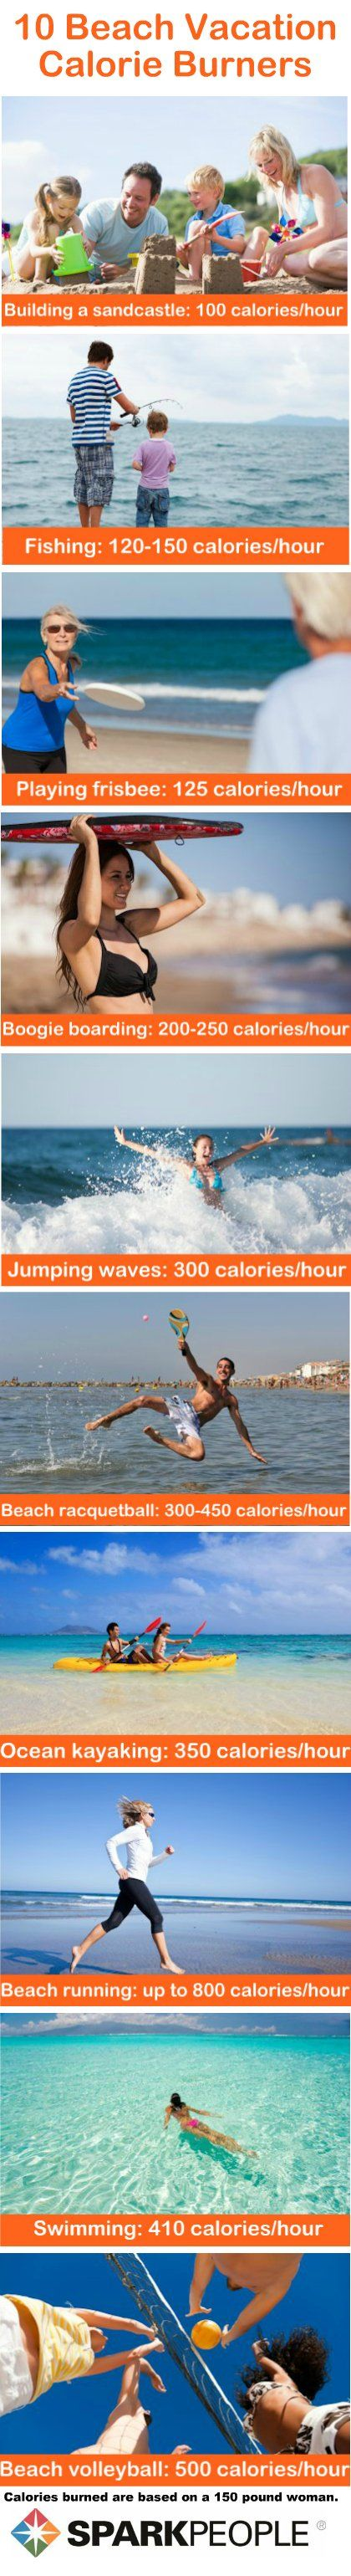 10 fun ways to burn calories at the beach sparkpeople